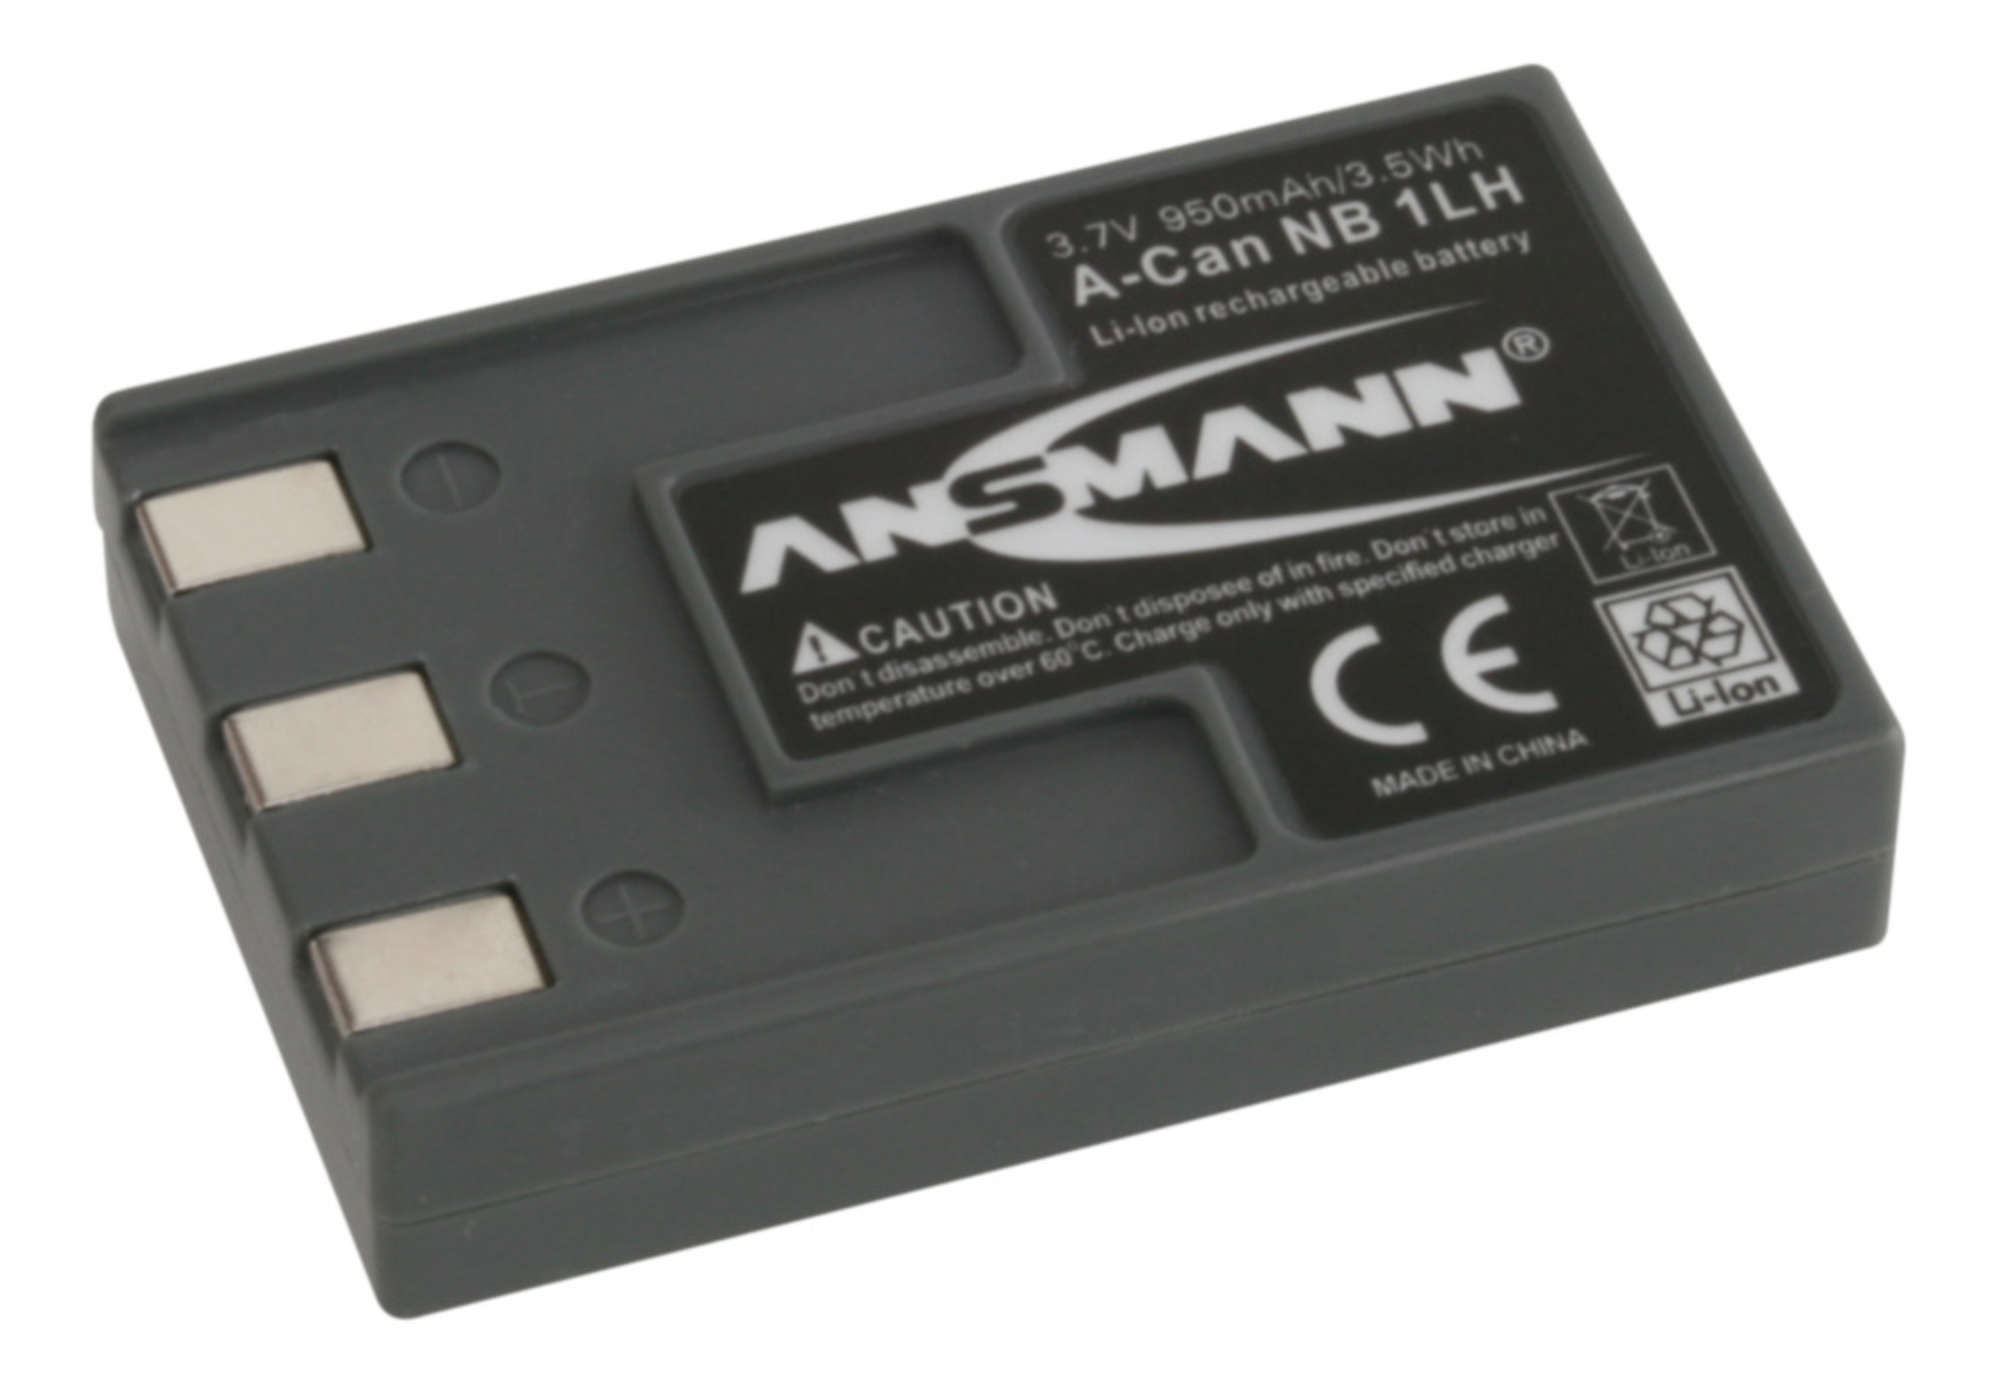 A-Can NB 1 LH